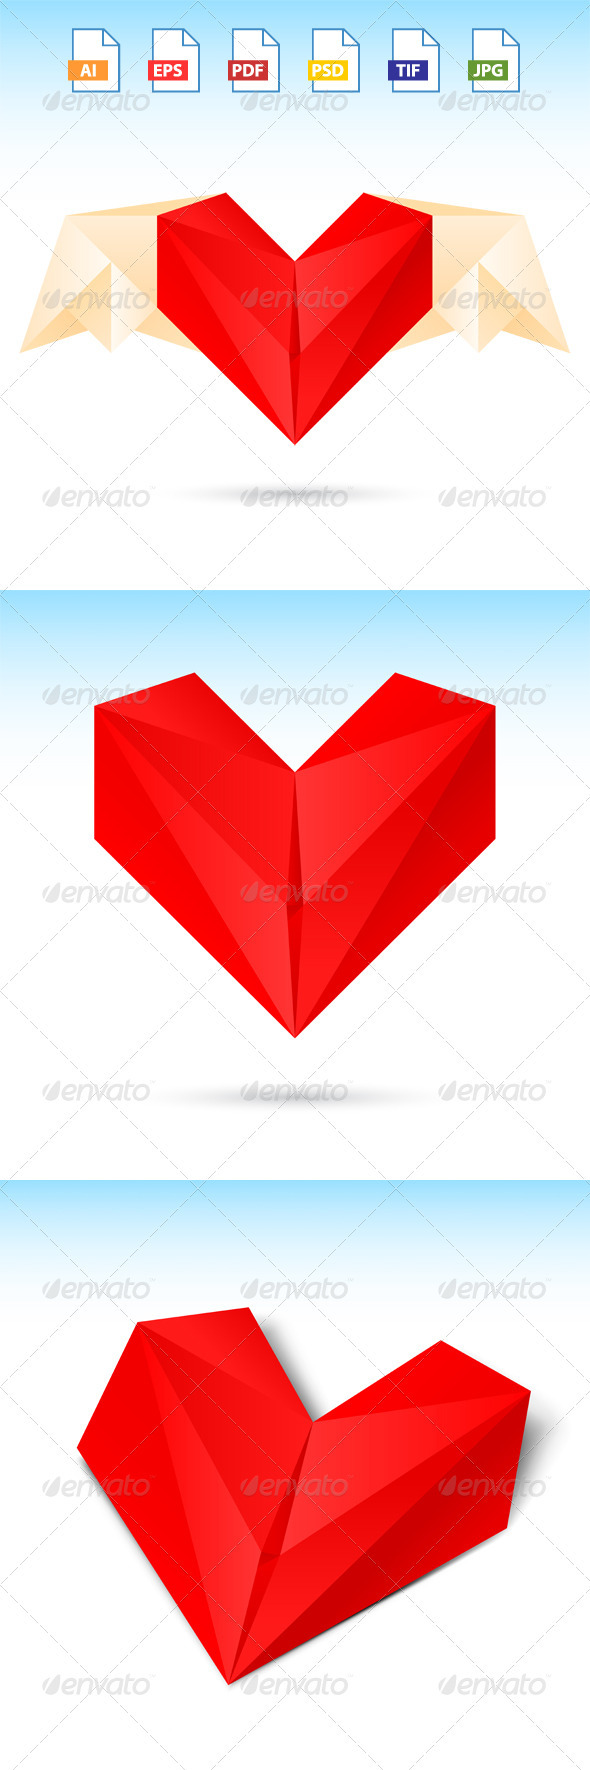 GraphicRiver 3 Red Heart Origami Paper 3767140